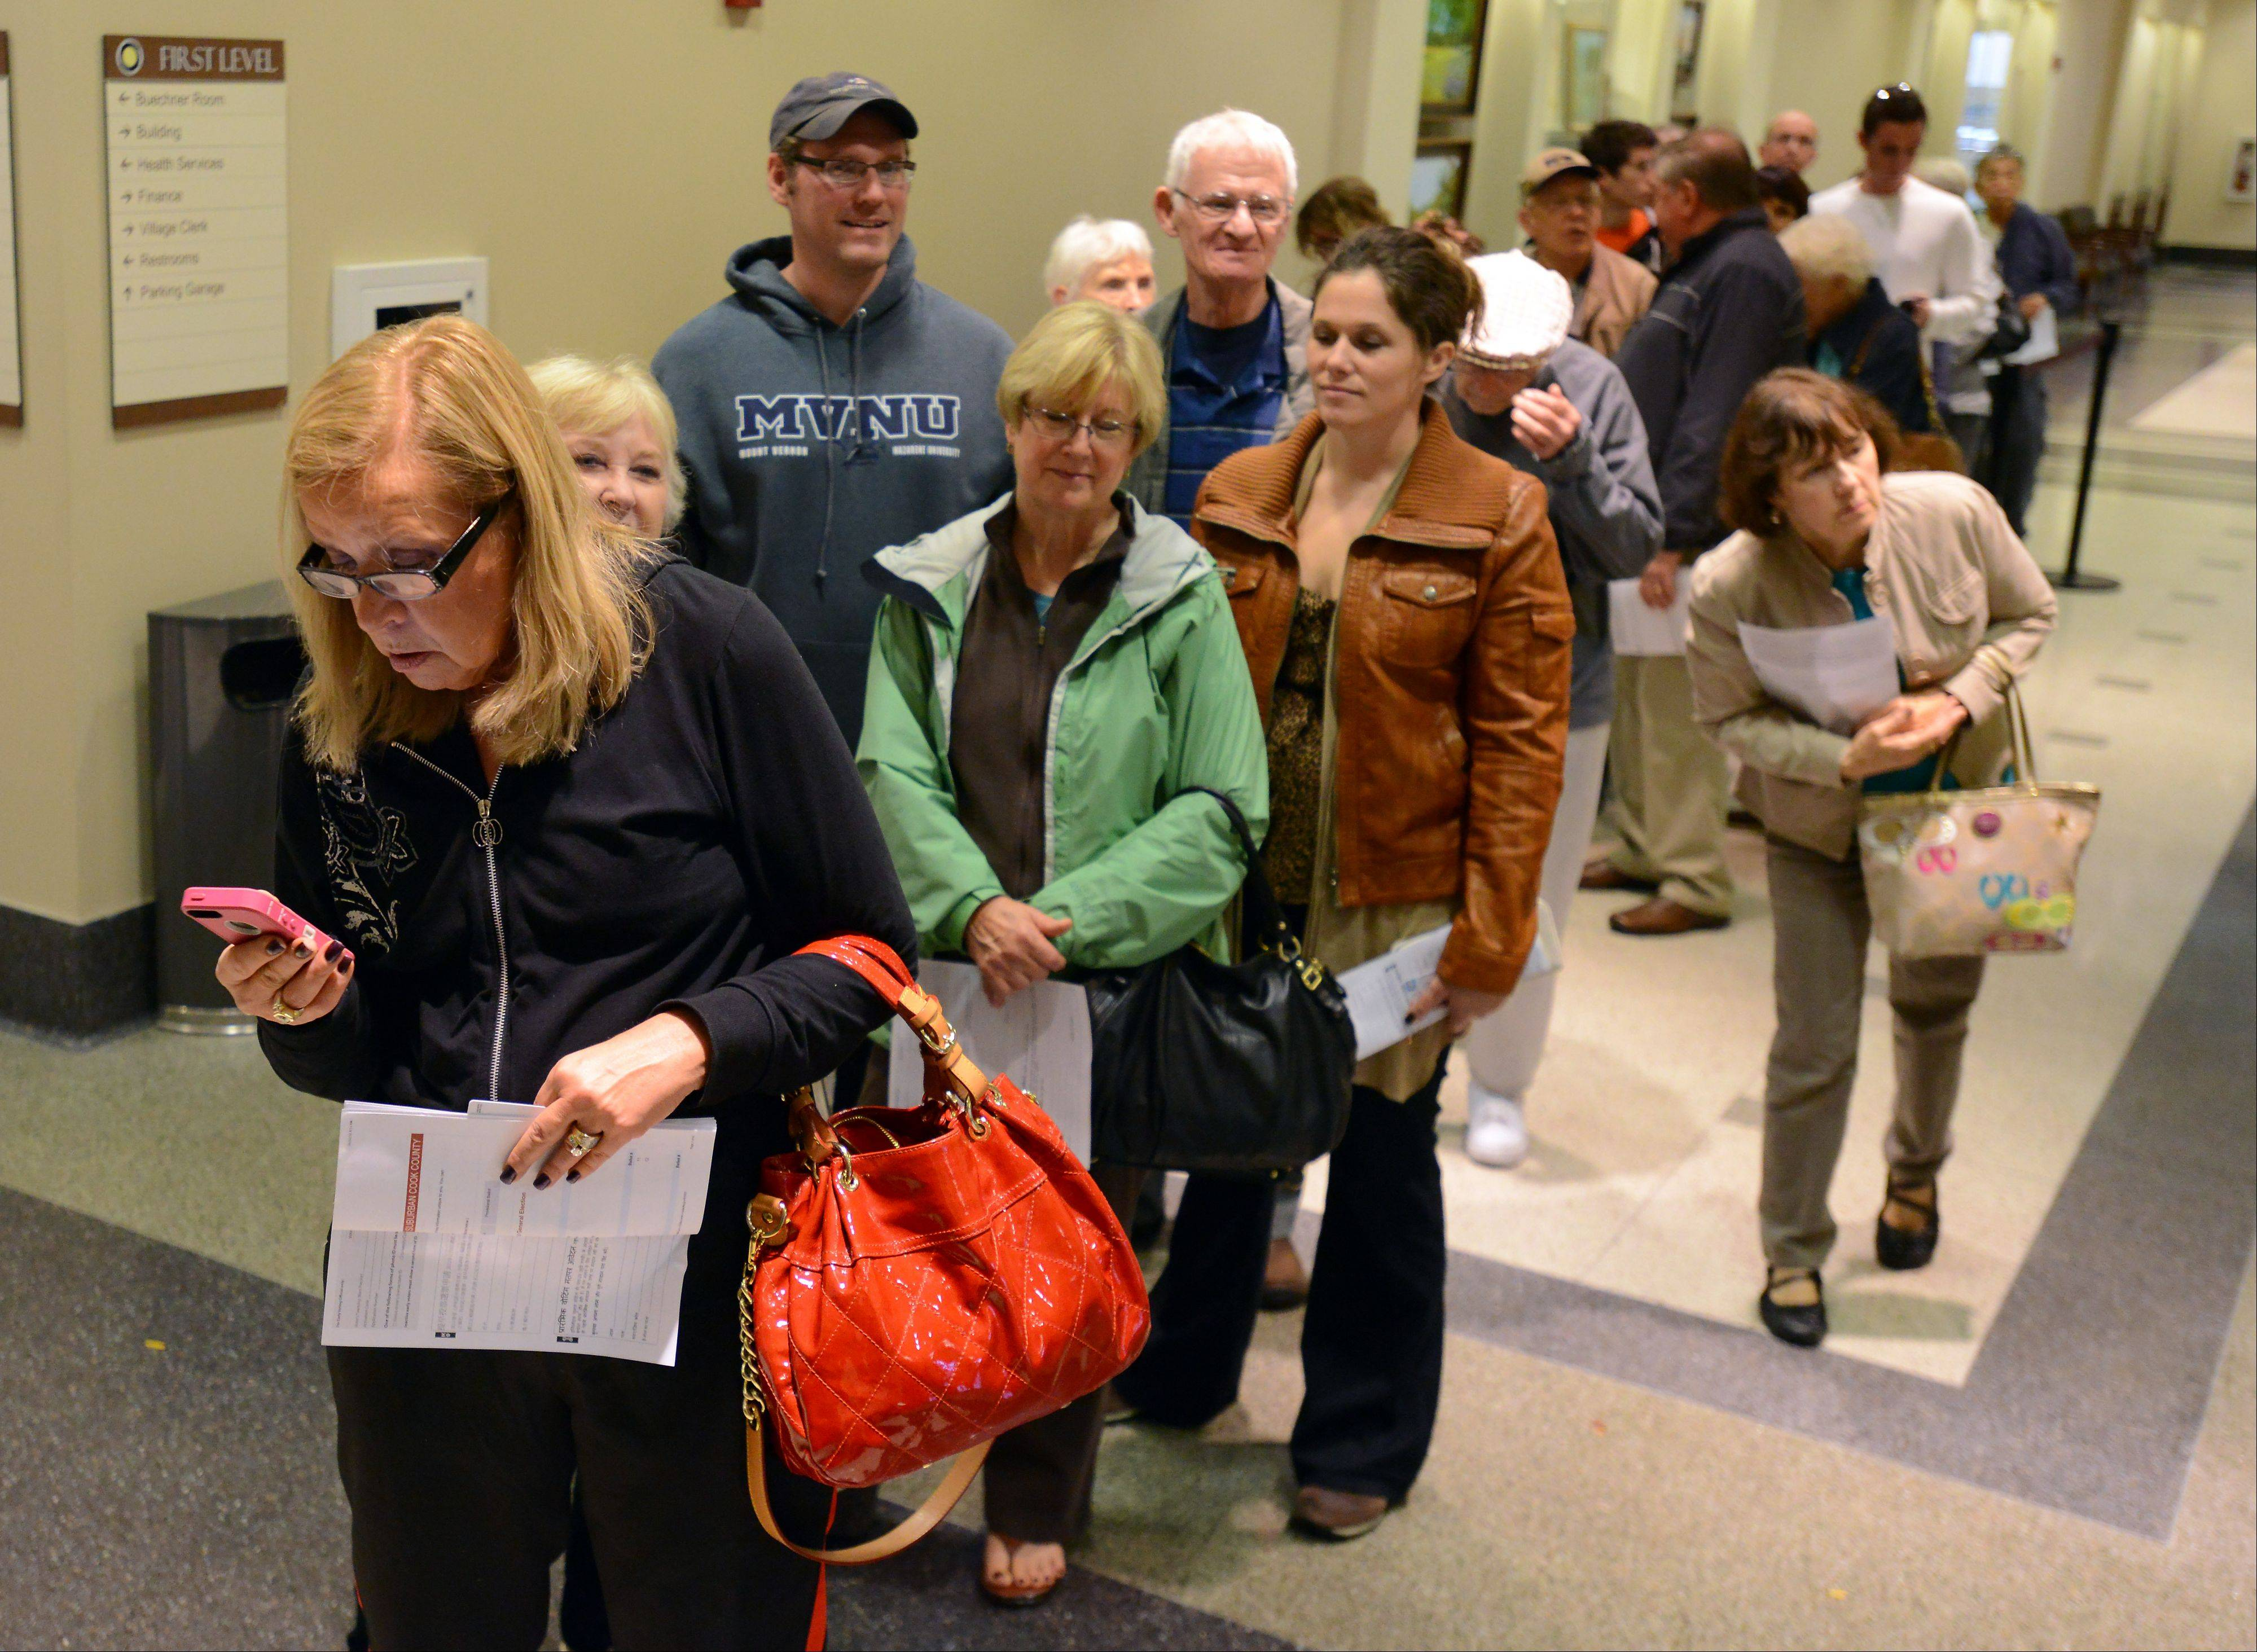 Sandie Campo of Arlington Heights holds her voter information as she stands in a long line of early voters at the Arlington Heights village hall on Monday. Village hall was the second most popular early voting location Monday in suburban Cook County.